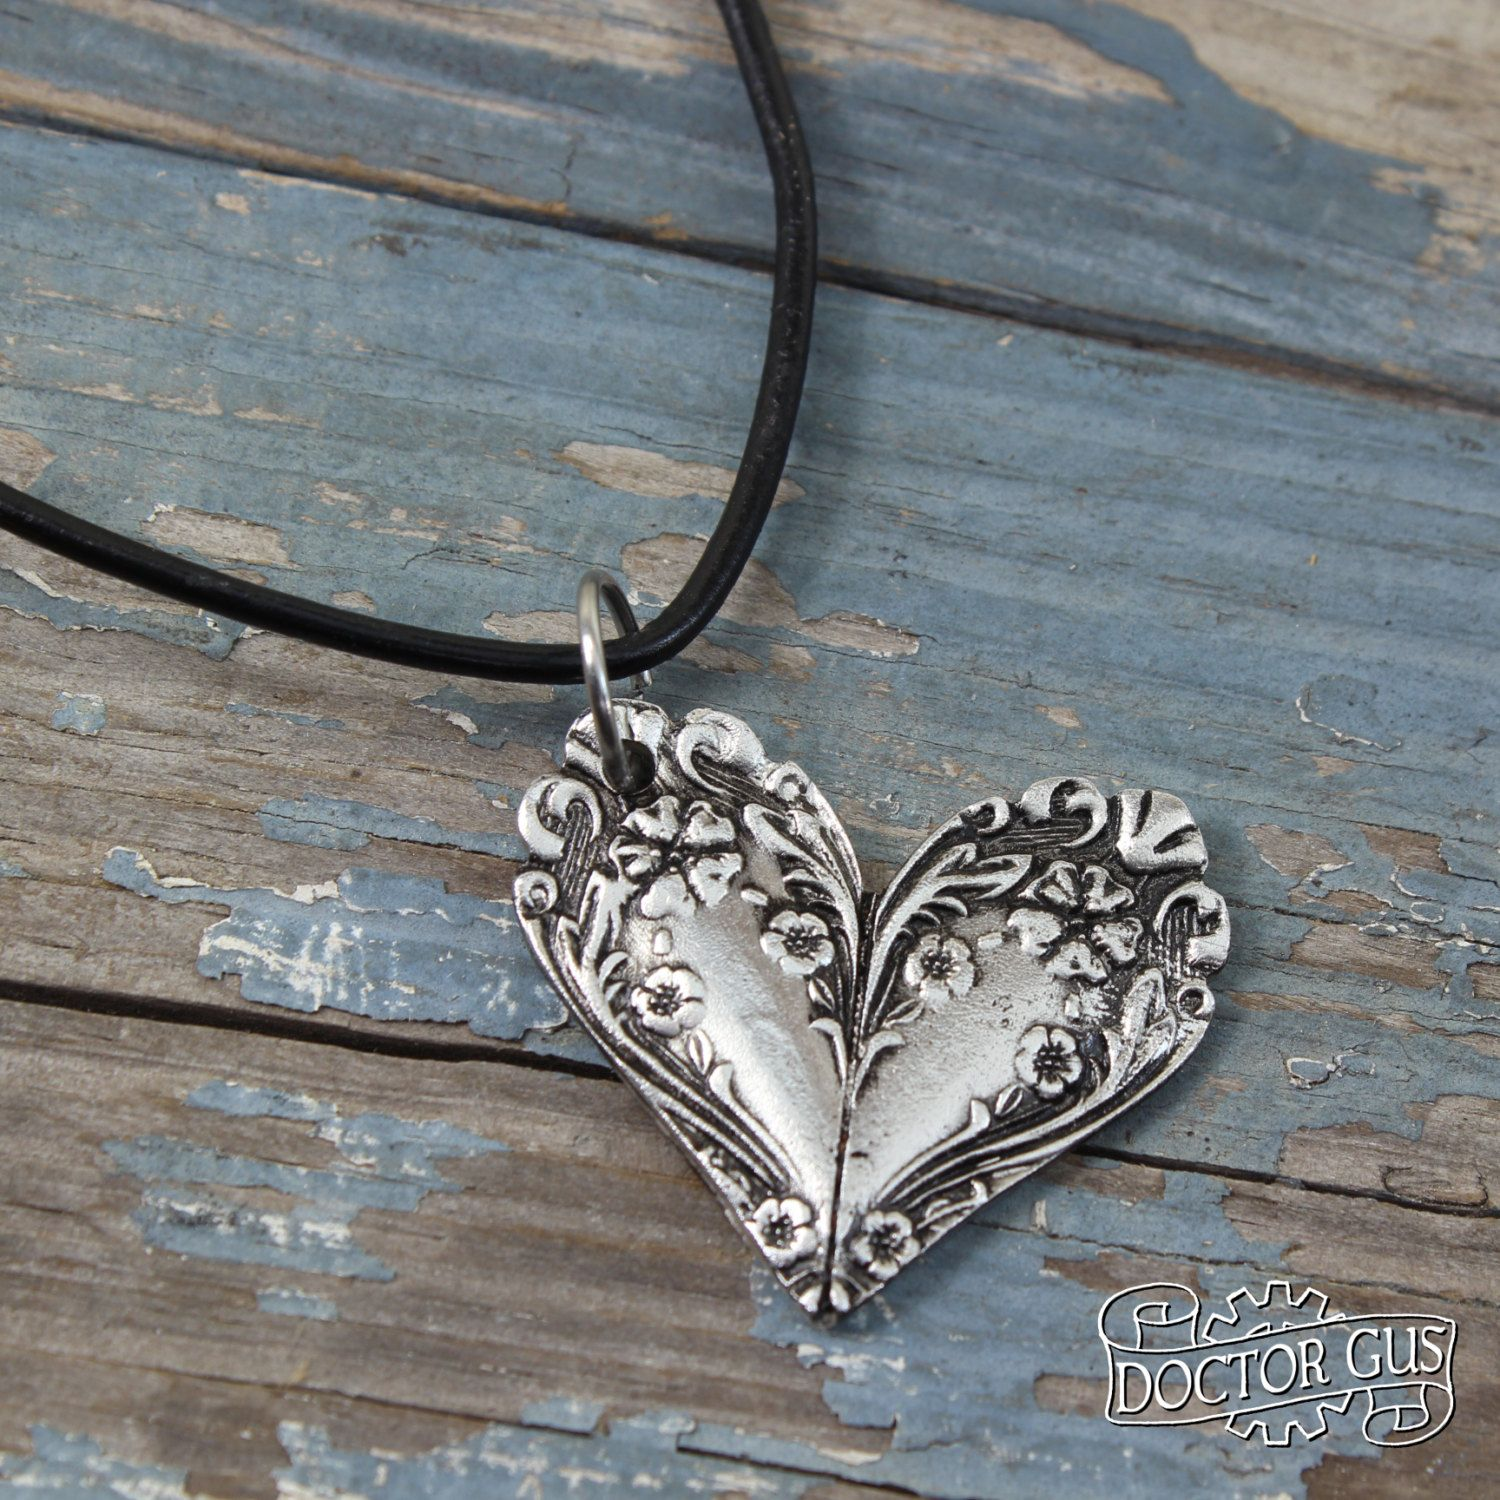 Use Accessories To Link Your Island To The Rest Of Your: Ornate Spoon Heart Necklace